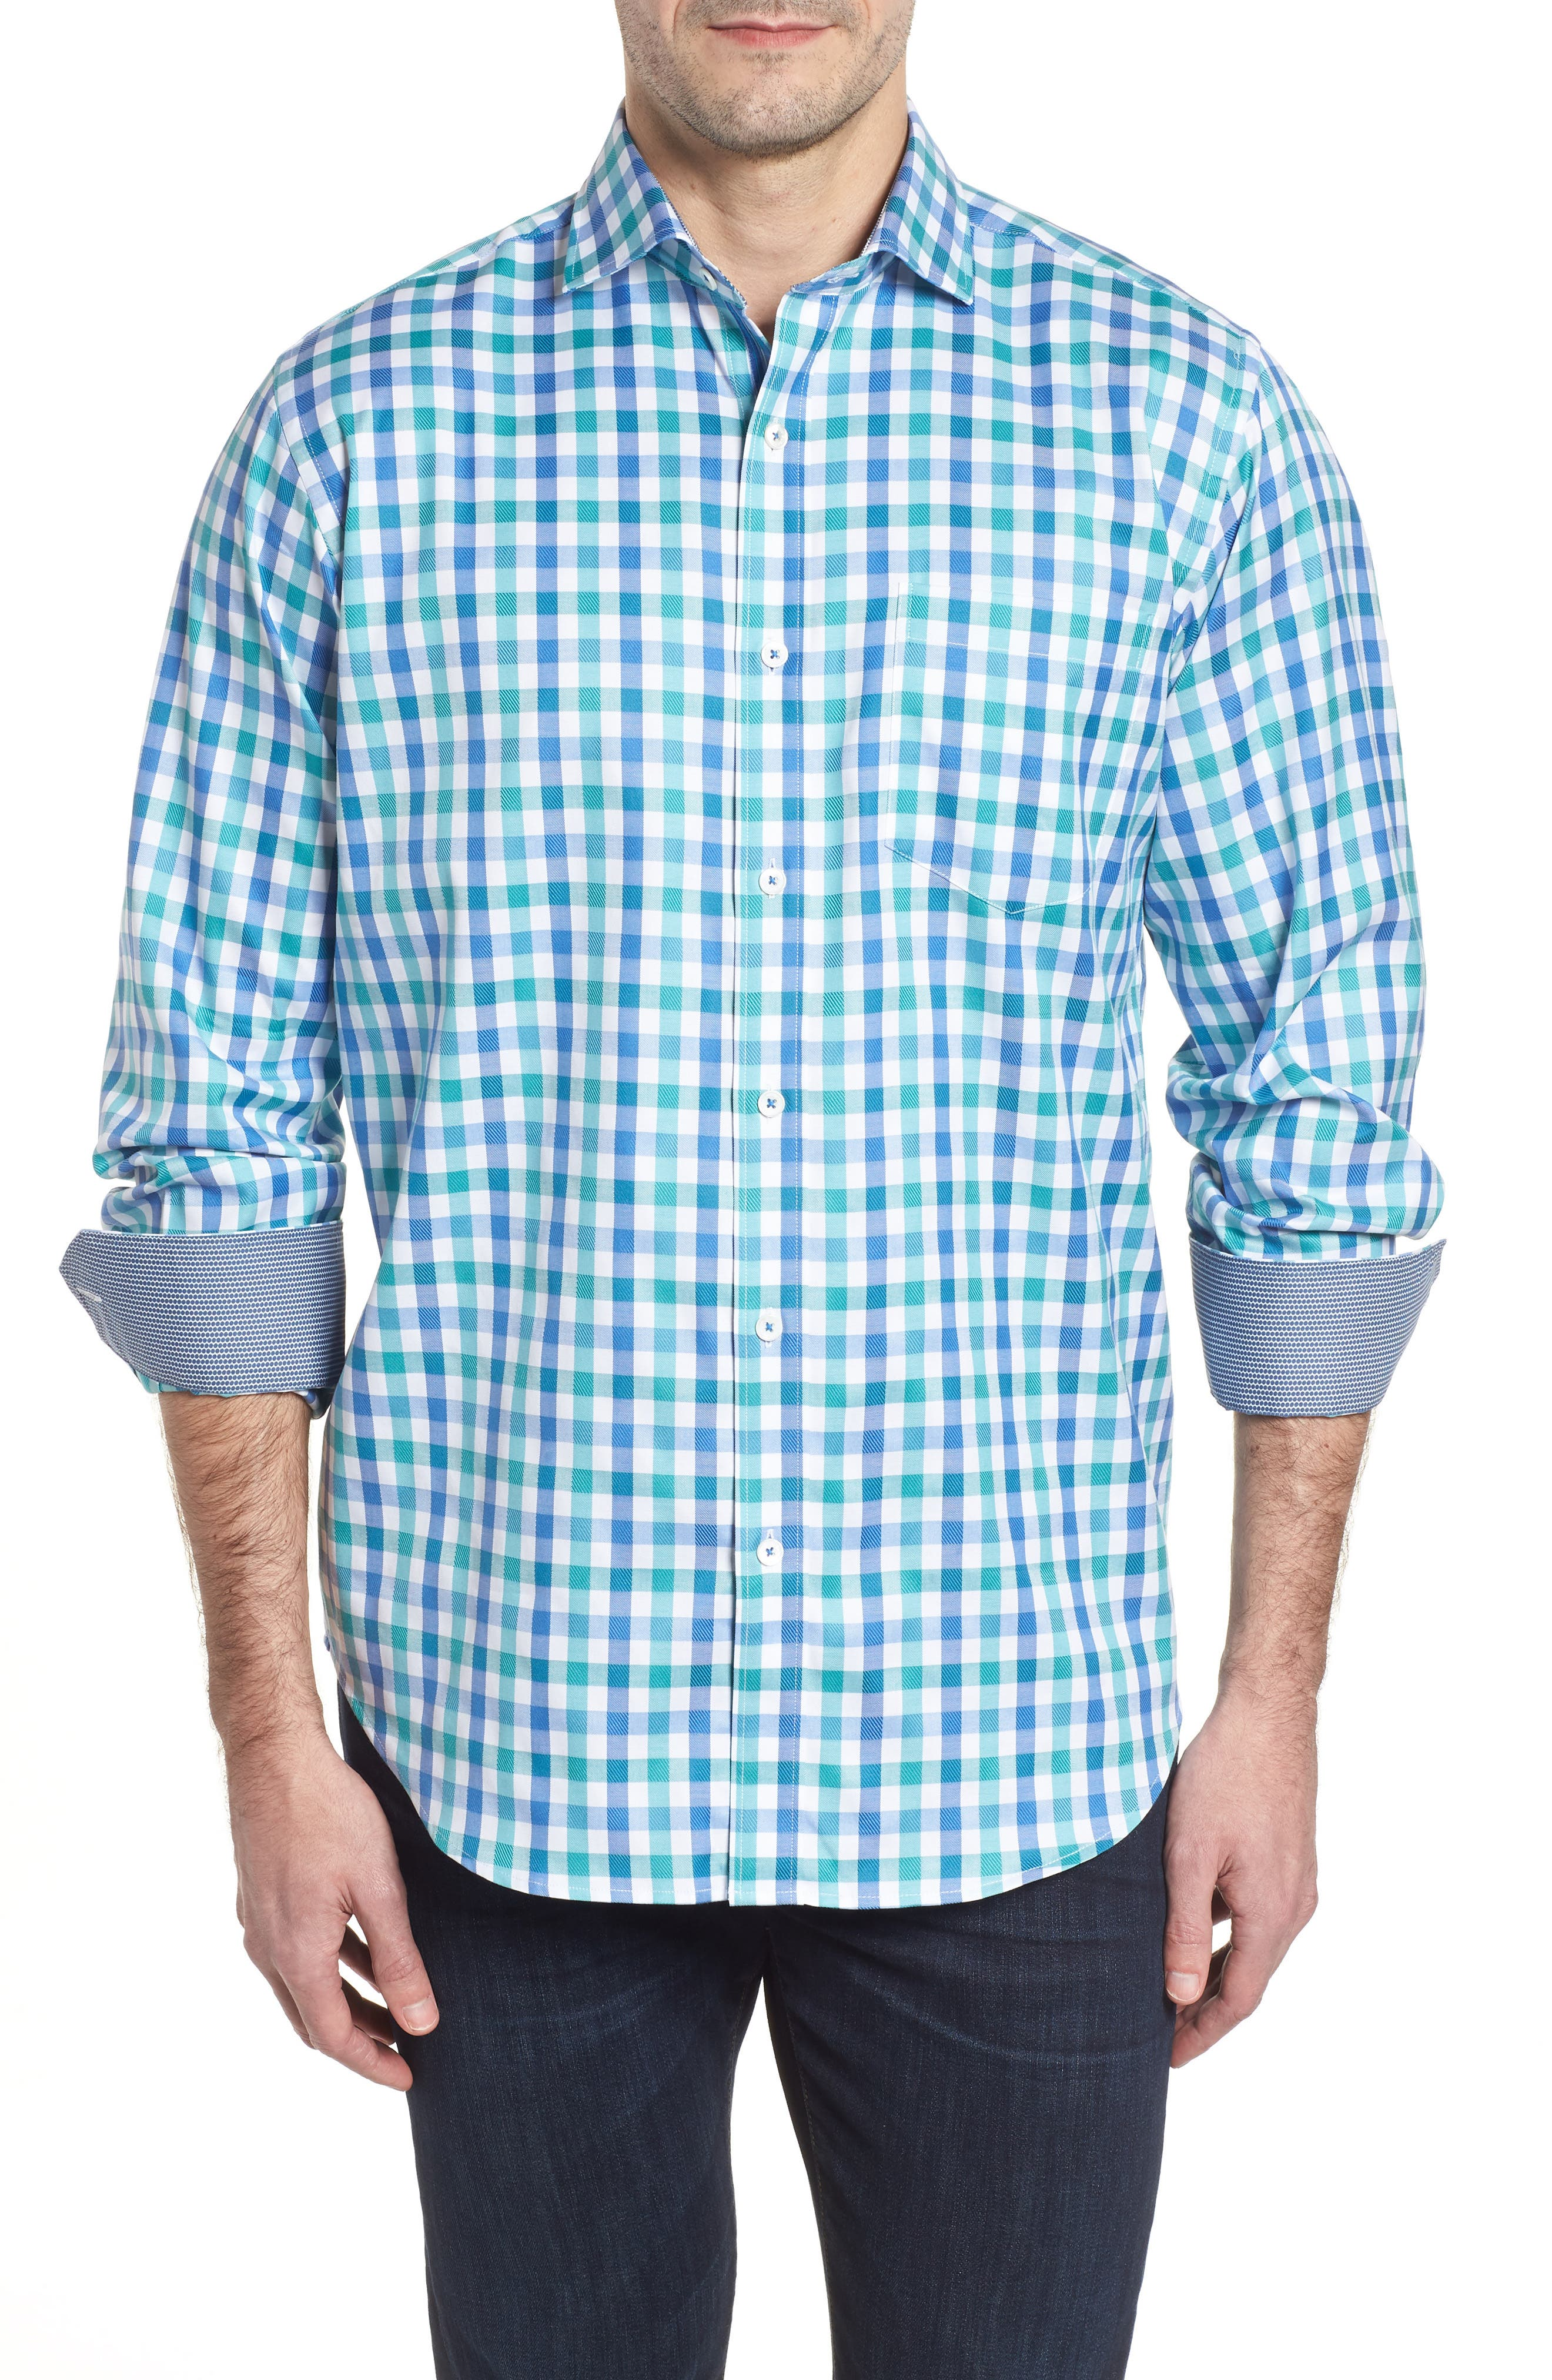 Classic Fit Gingham Check Sport Shirt,                             Main thumbnail 1, color,                             313